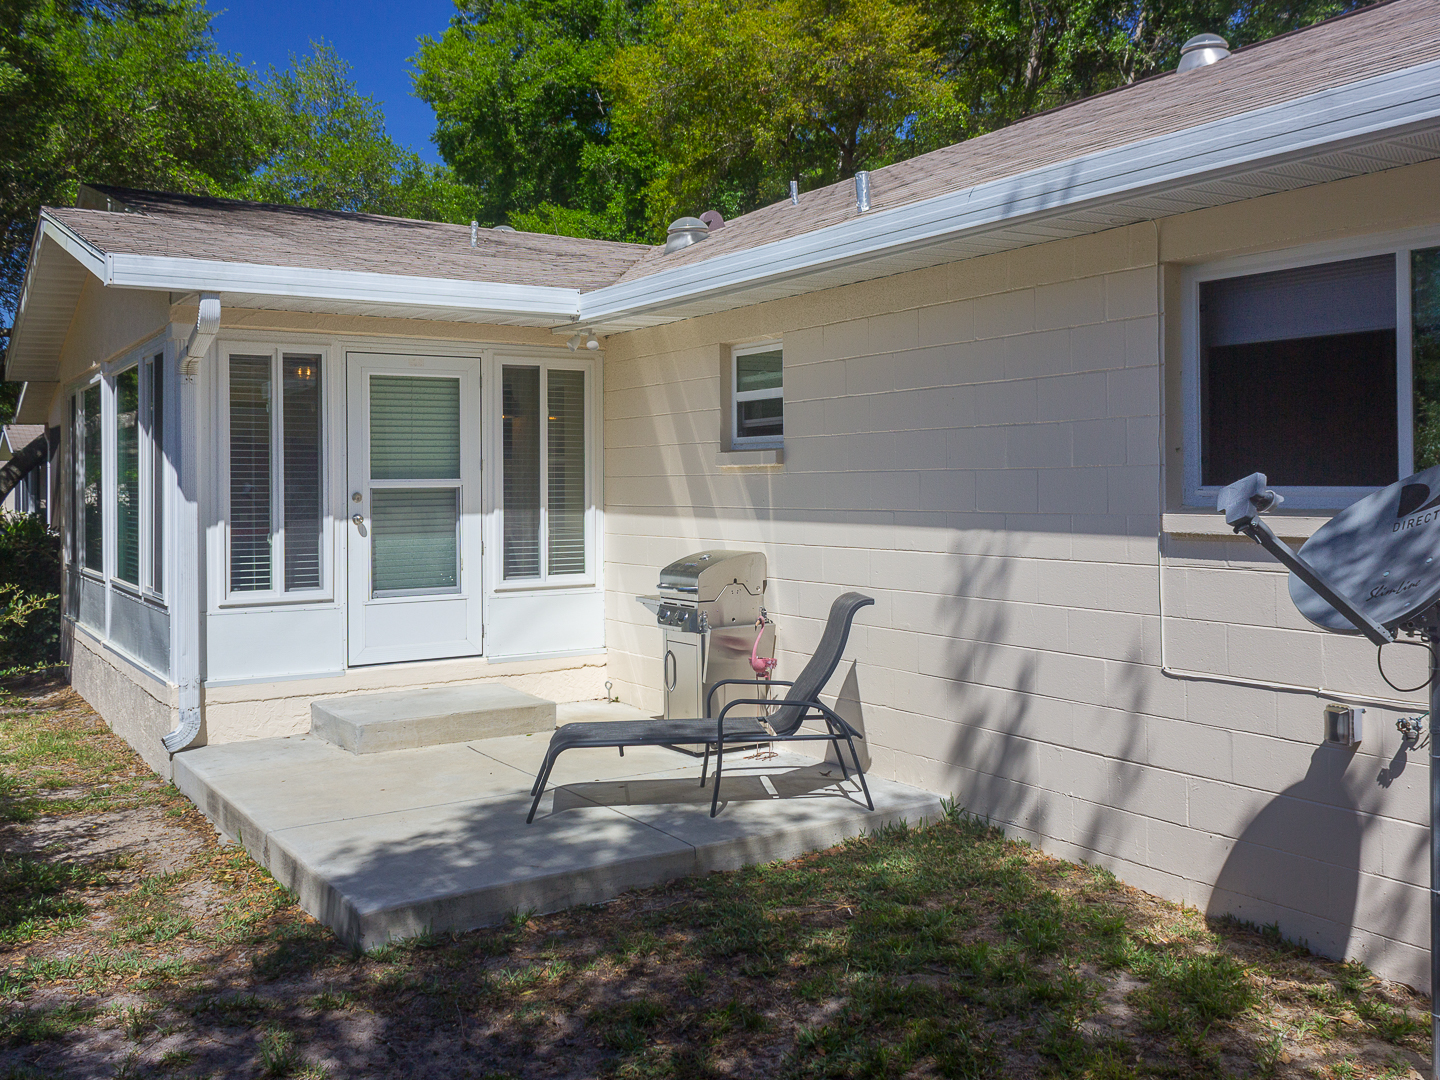 8524D SW 90th Lane, Ocala, FL 34481-118